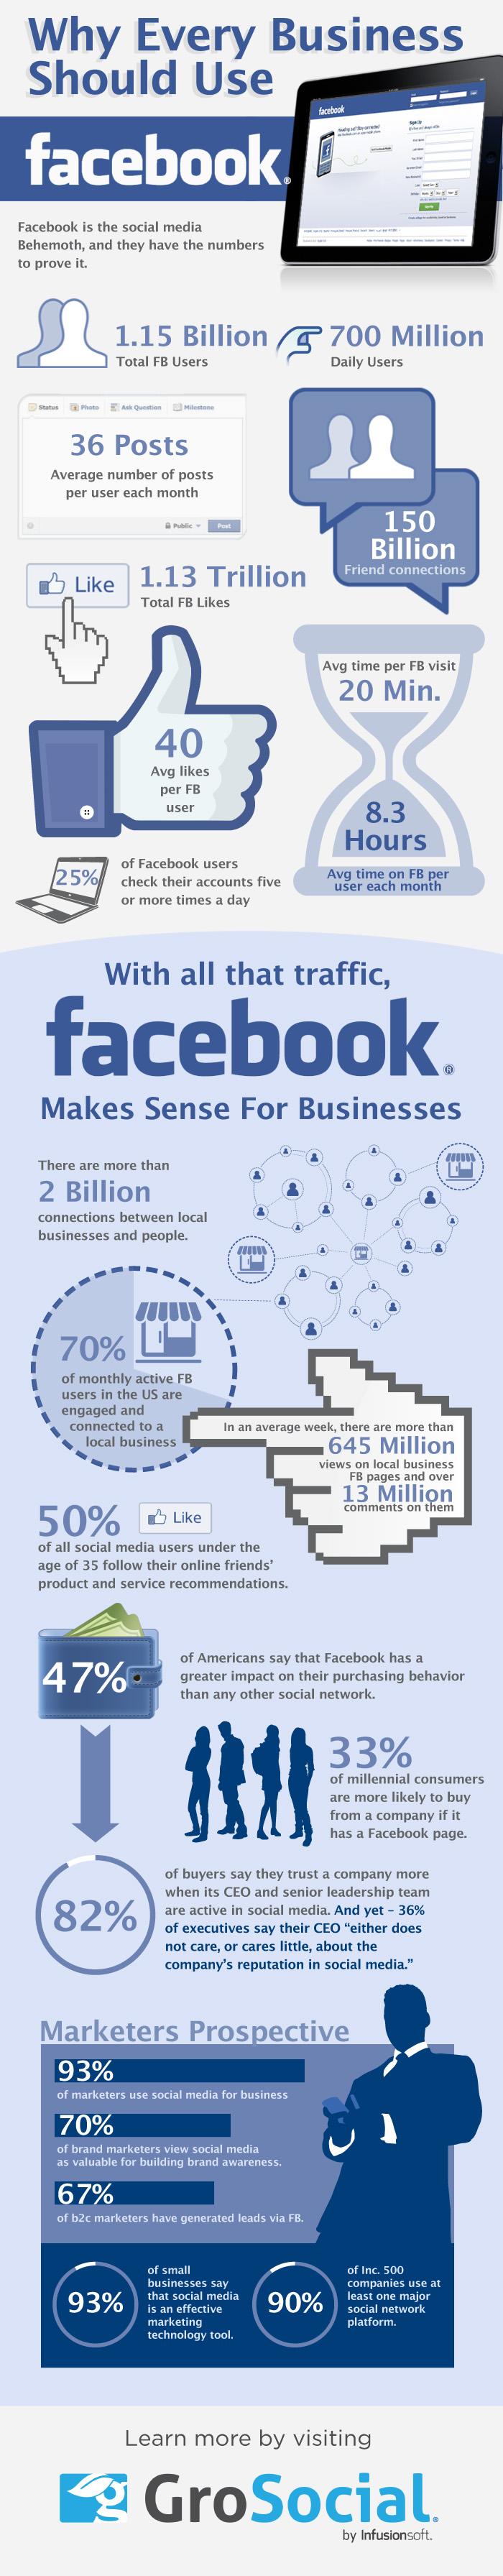 Facebook Frenzy-Infographic